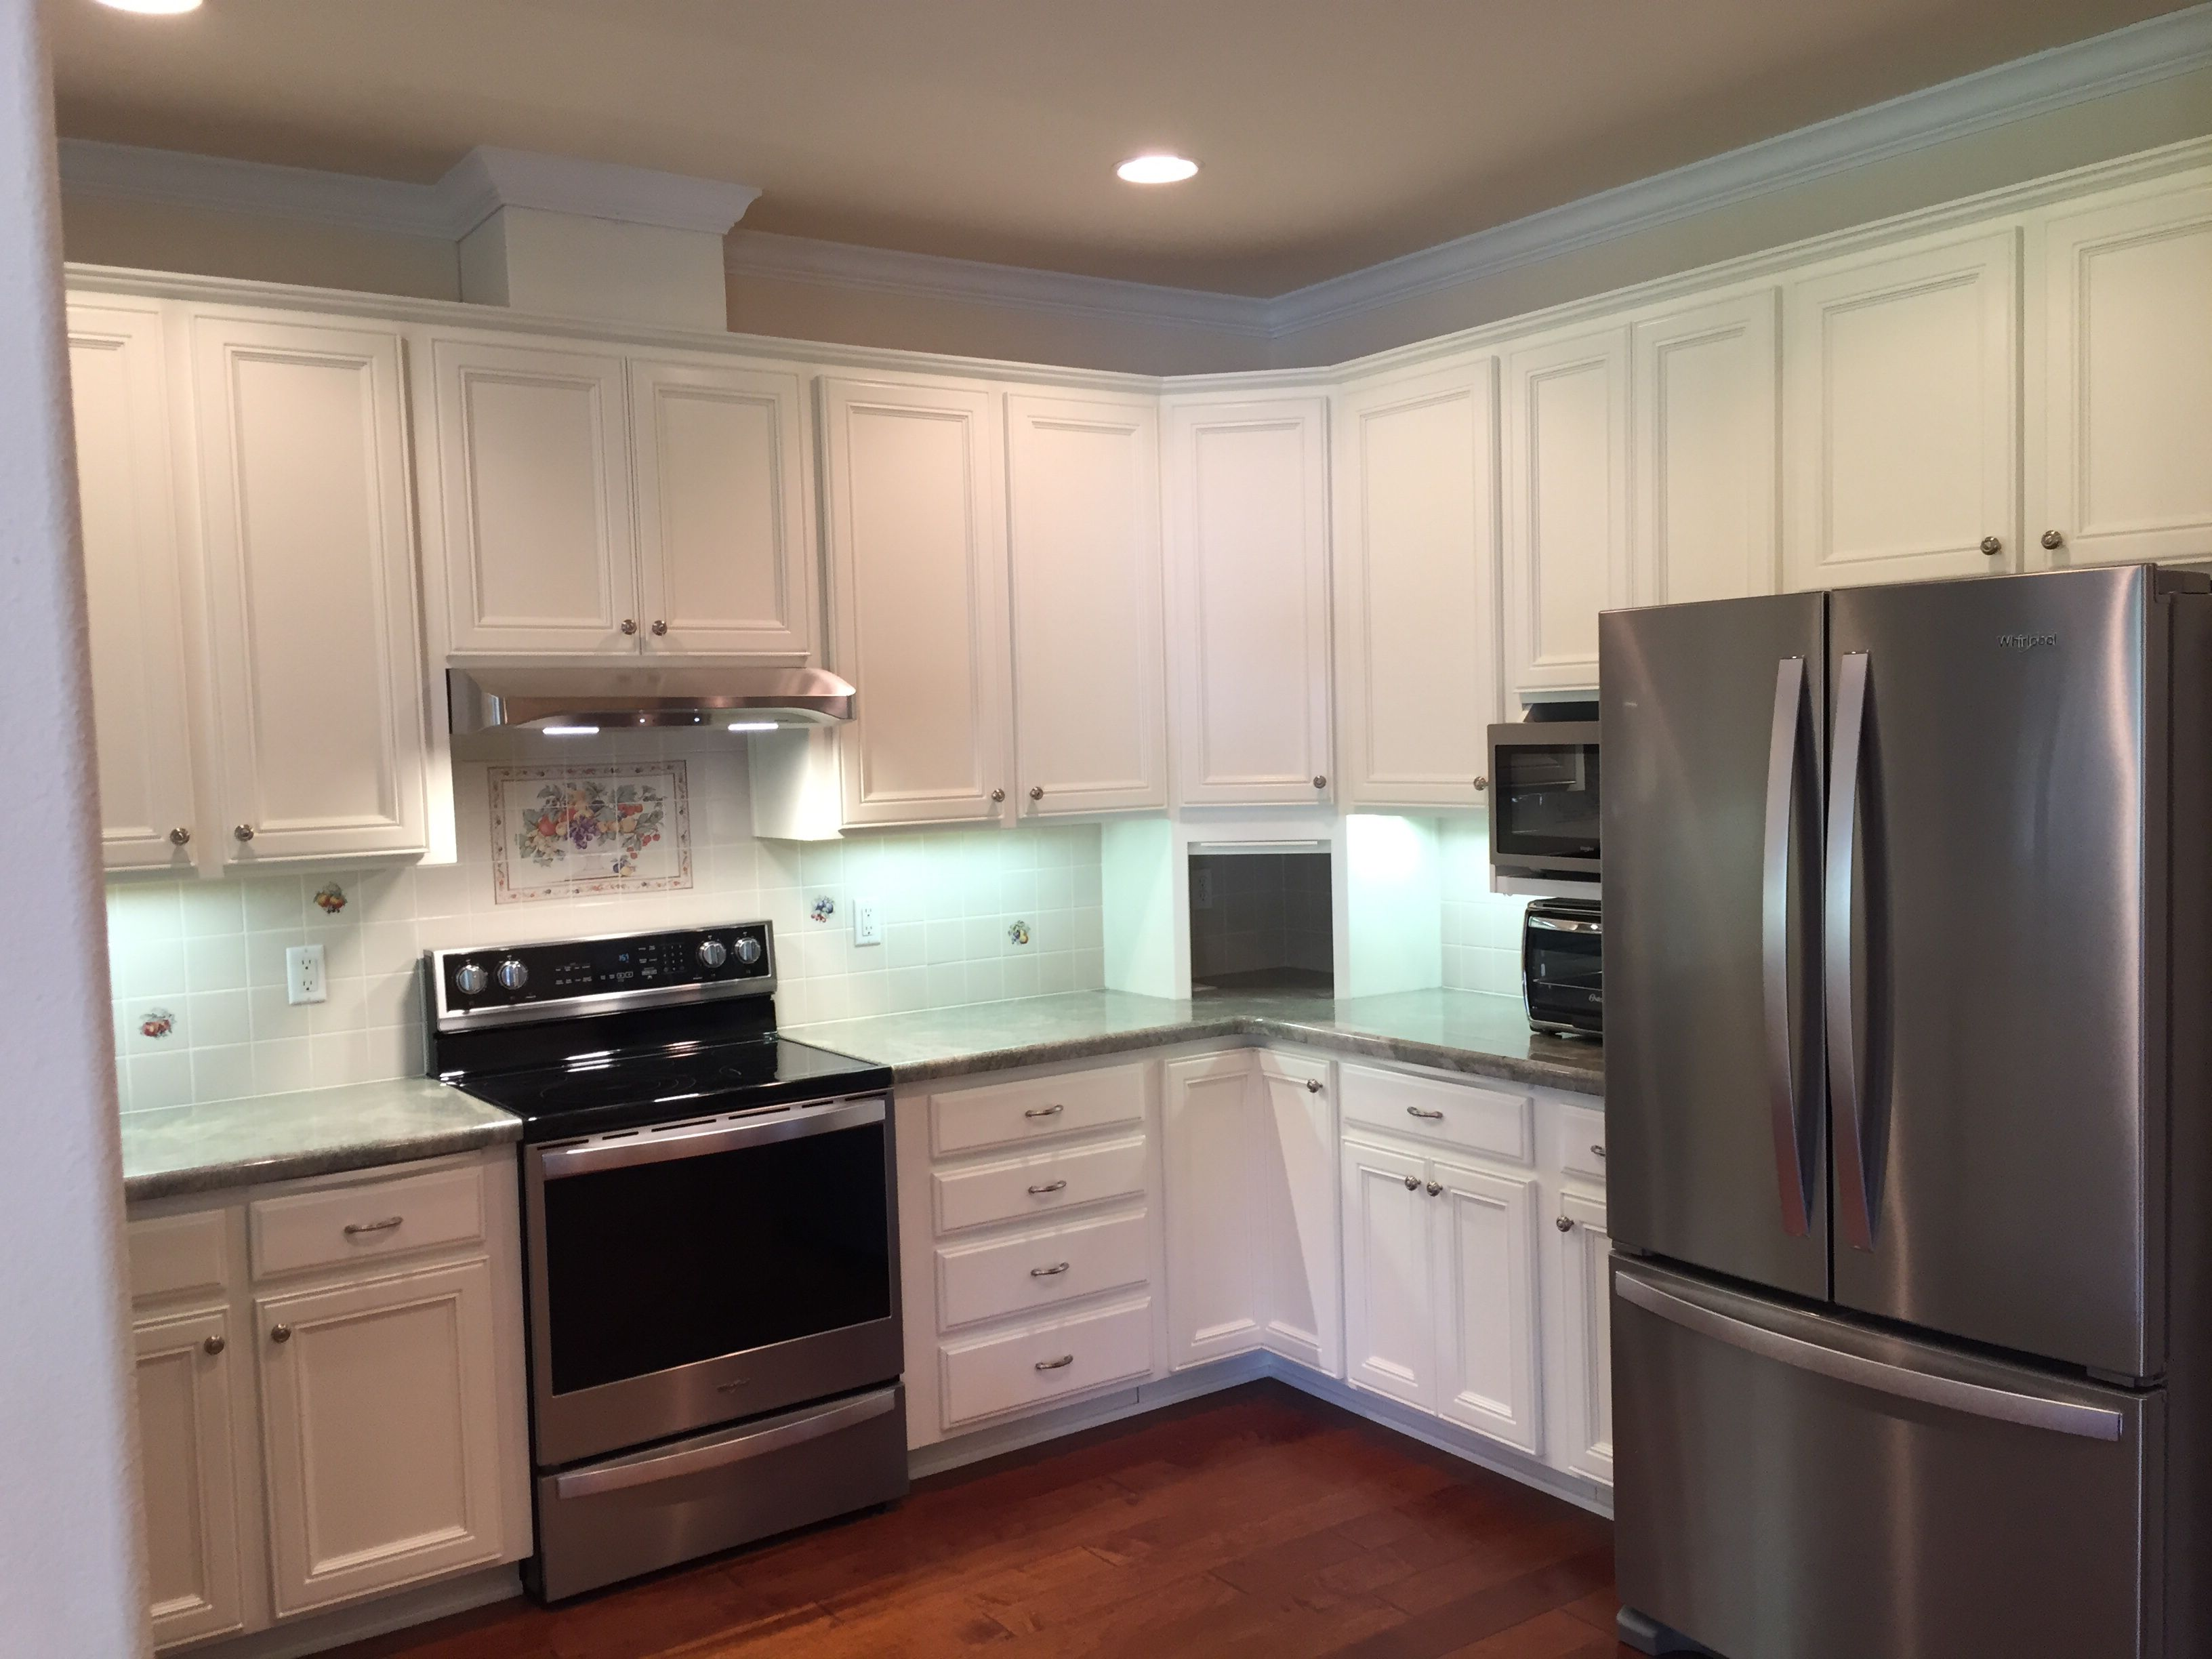 Rejuvenate Your Kitchen On A Budget Kitchen On A Budget Cabinet Kitchen Remodel